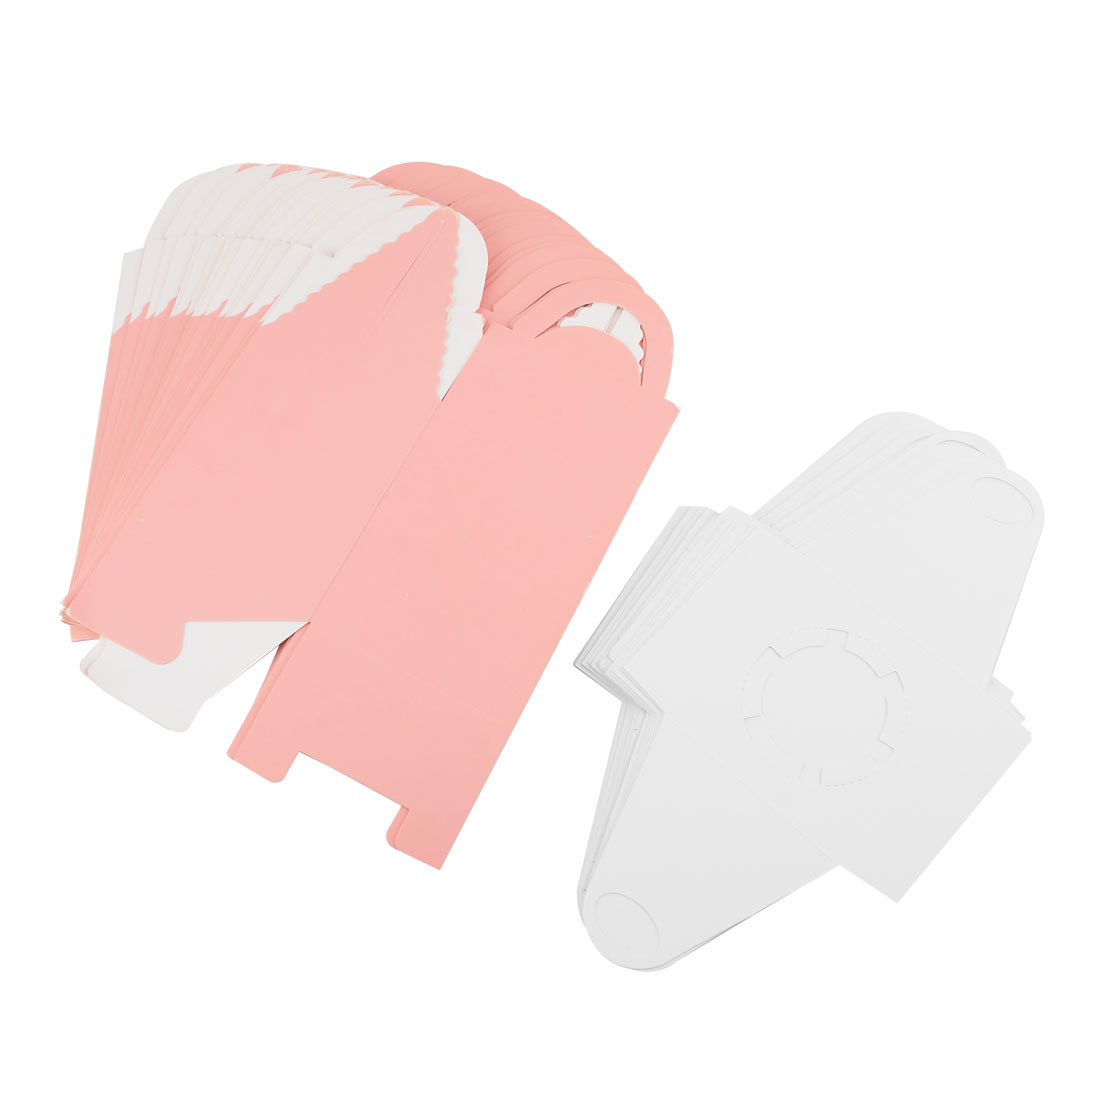 Birthday Bakery Paper Foldable Cake Cupcake Container Box Coral Pink 20pcs